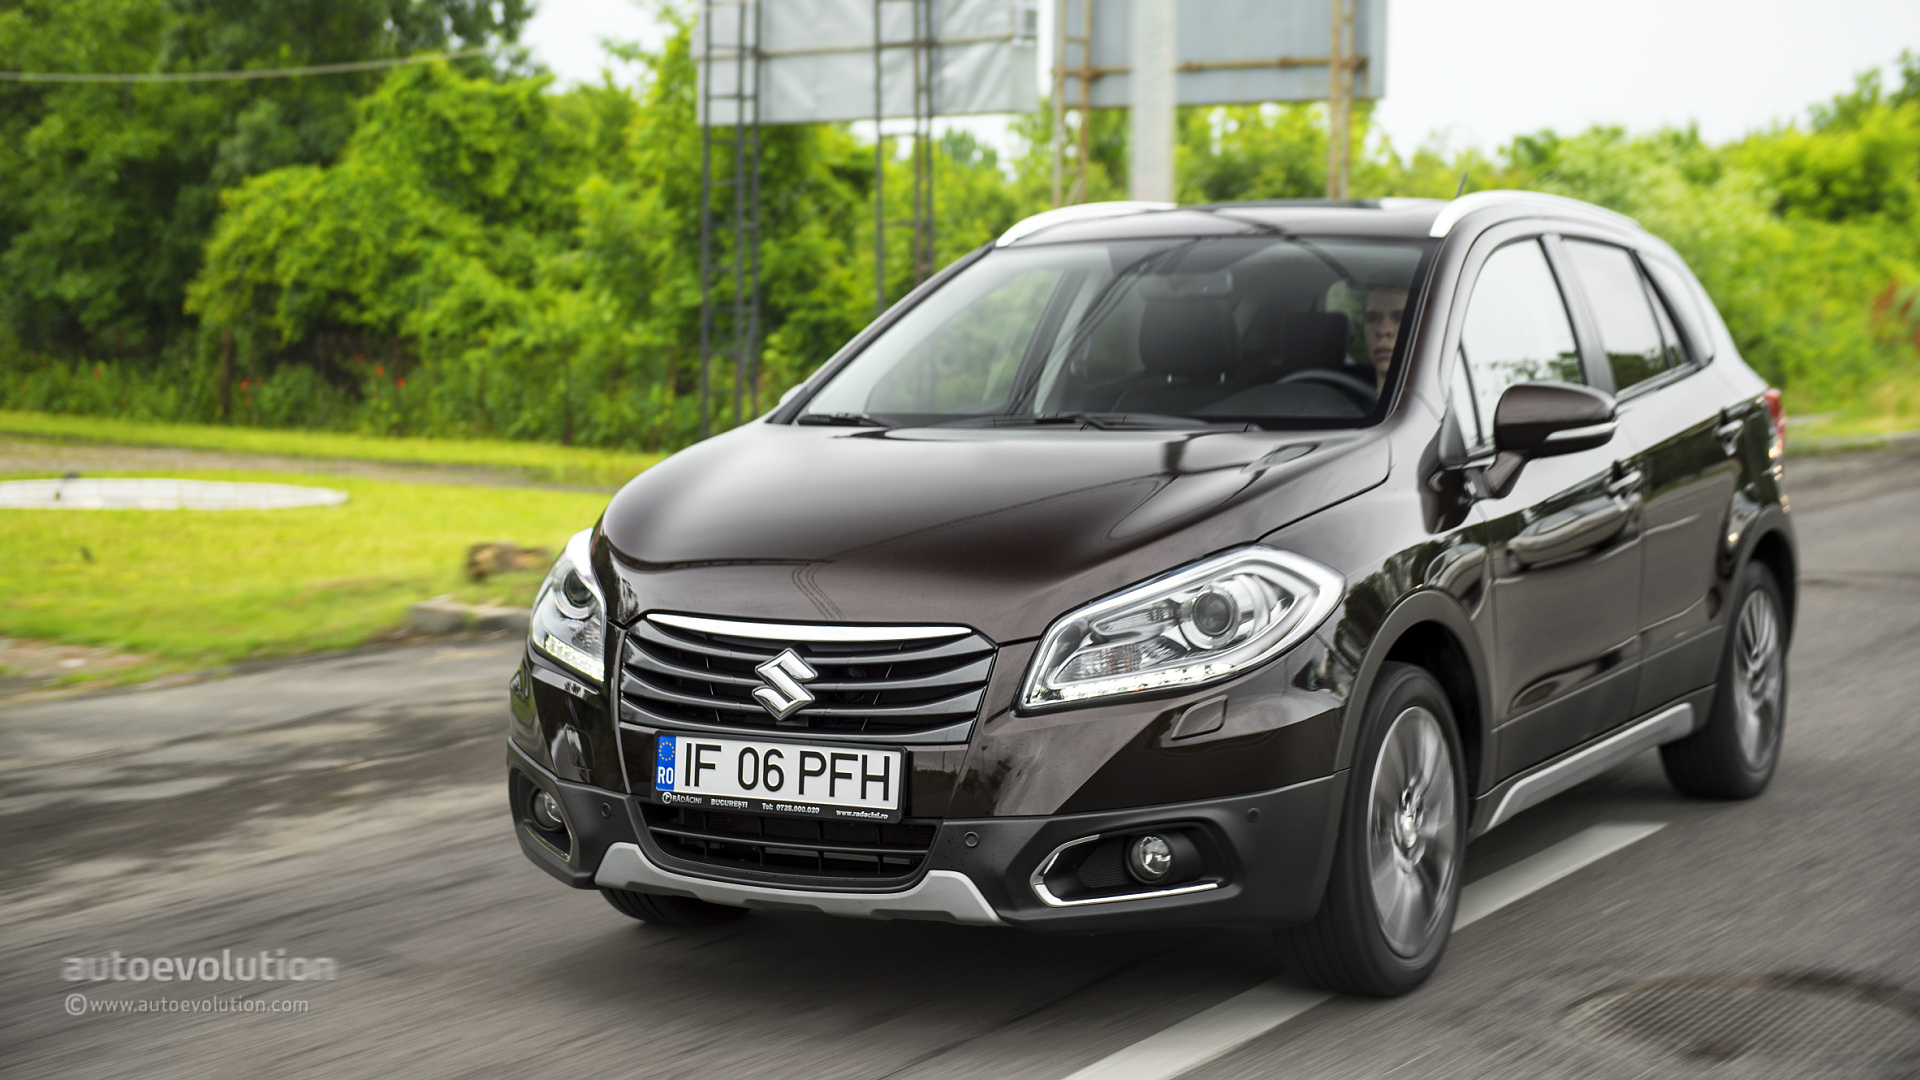 2014 Suzuki Sx 4 S Cross First Drive Autoevolution